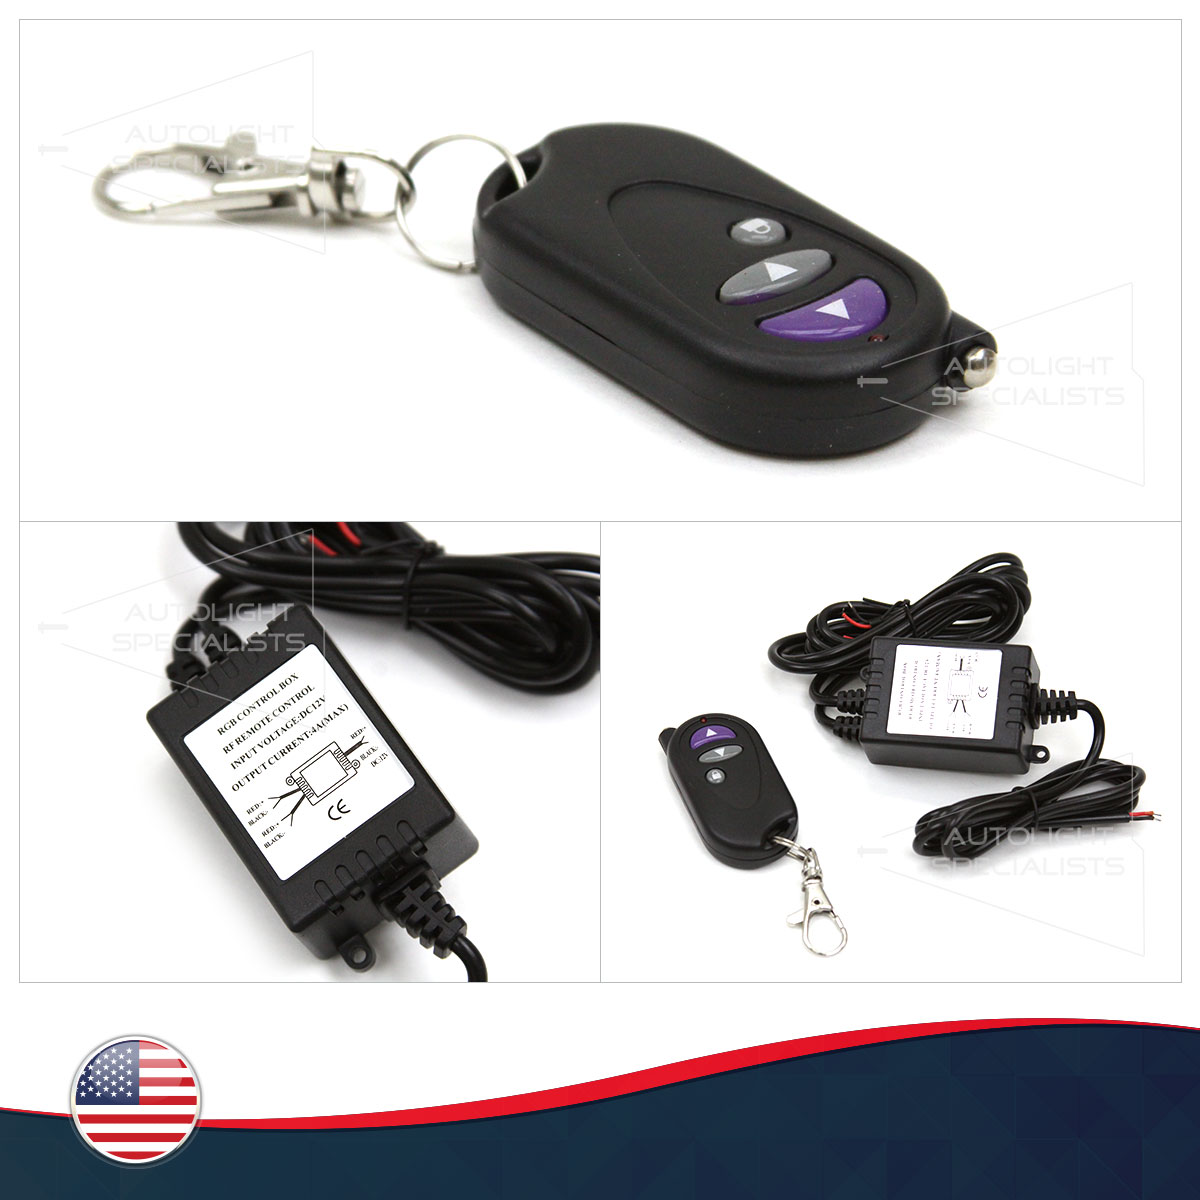 FOR CHEVY CARS 2-OUTPUTS LED/HALO LIGHTS REMOTE CONTROL SWTICH ON ...